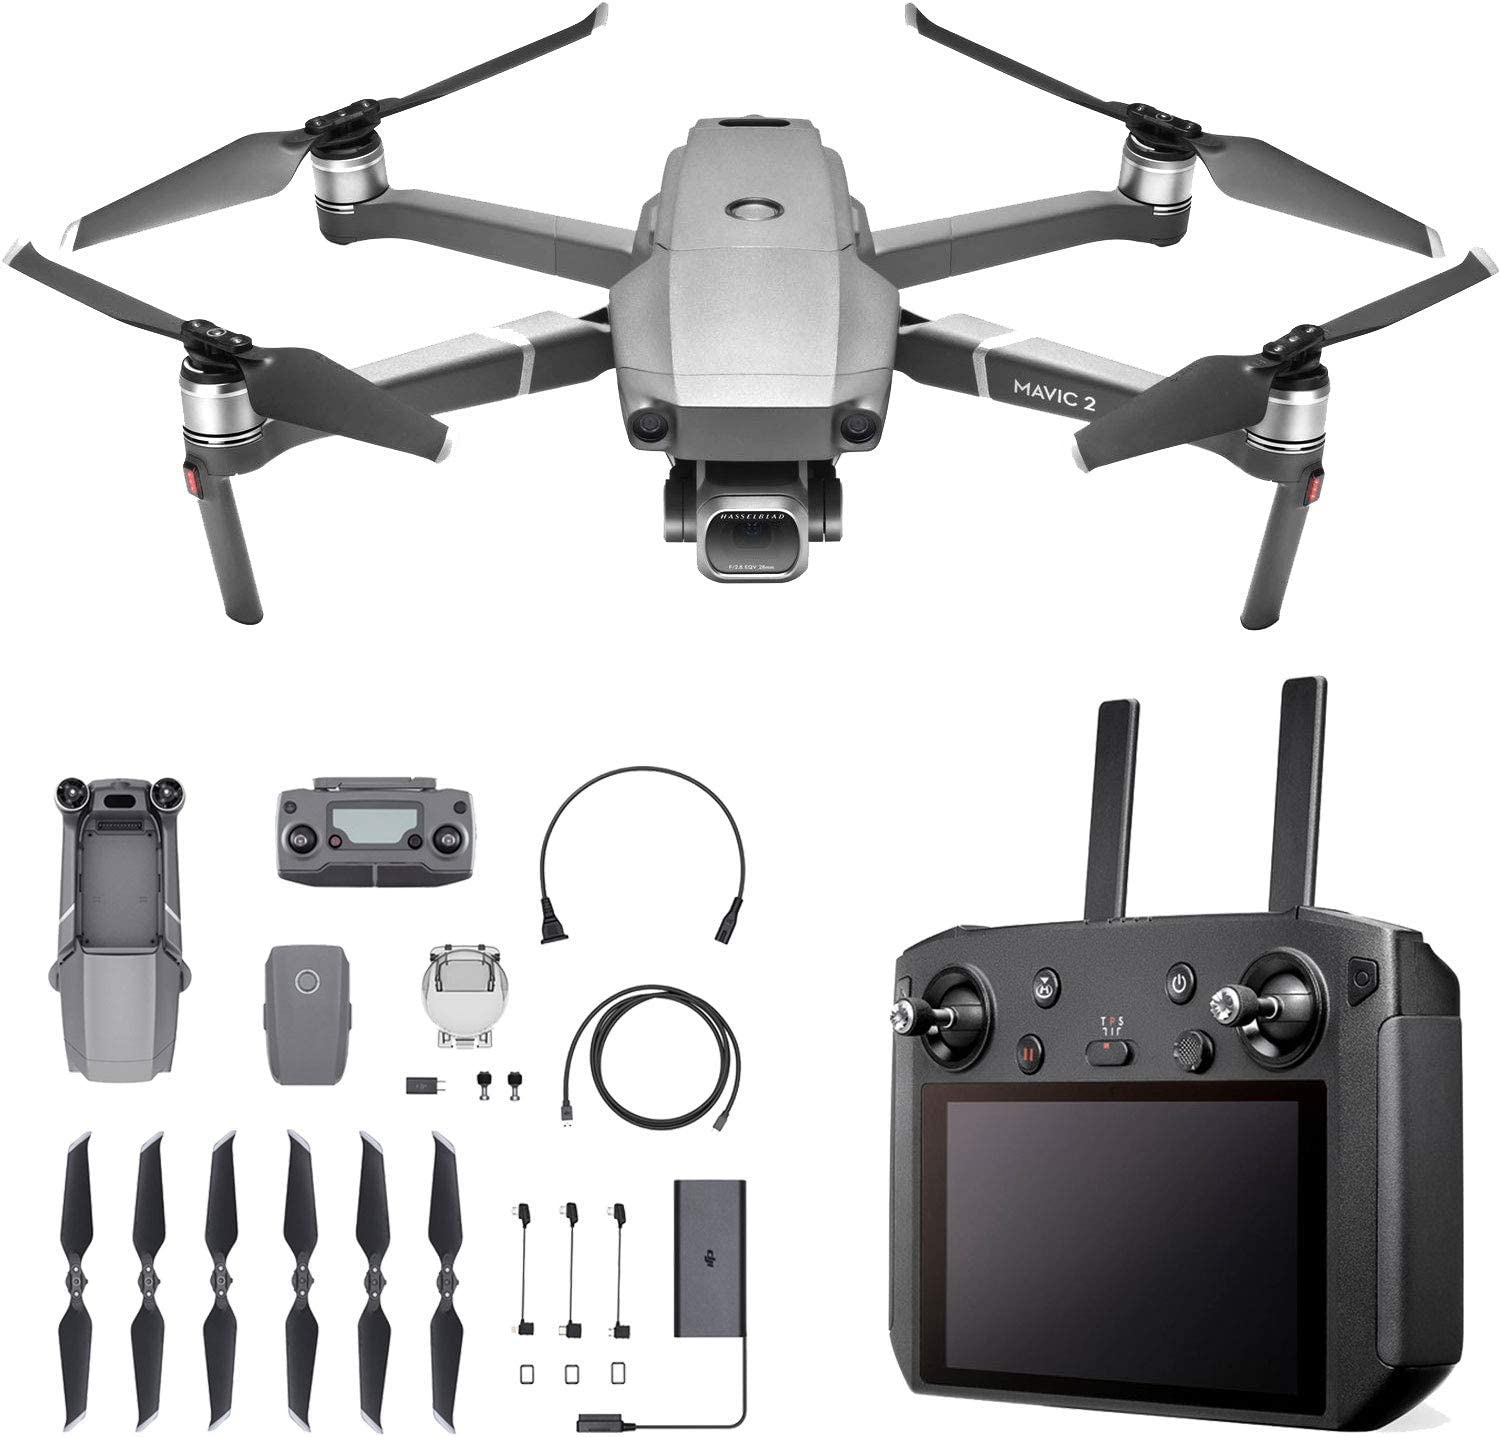 DJi Mavic 2 Pro is at #2 for the best live feed drones